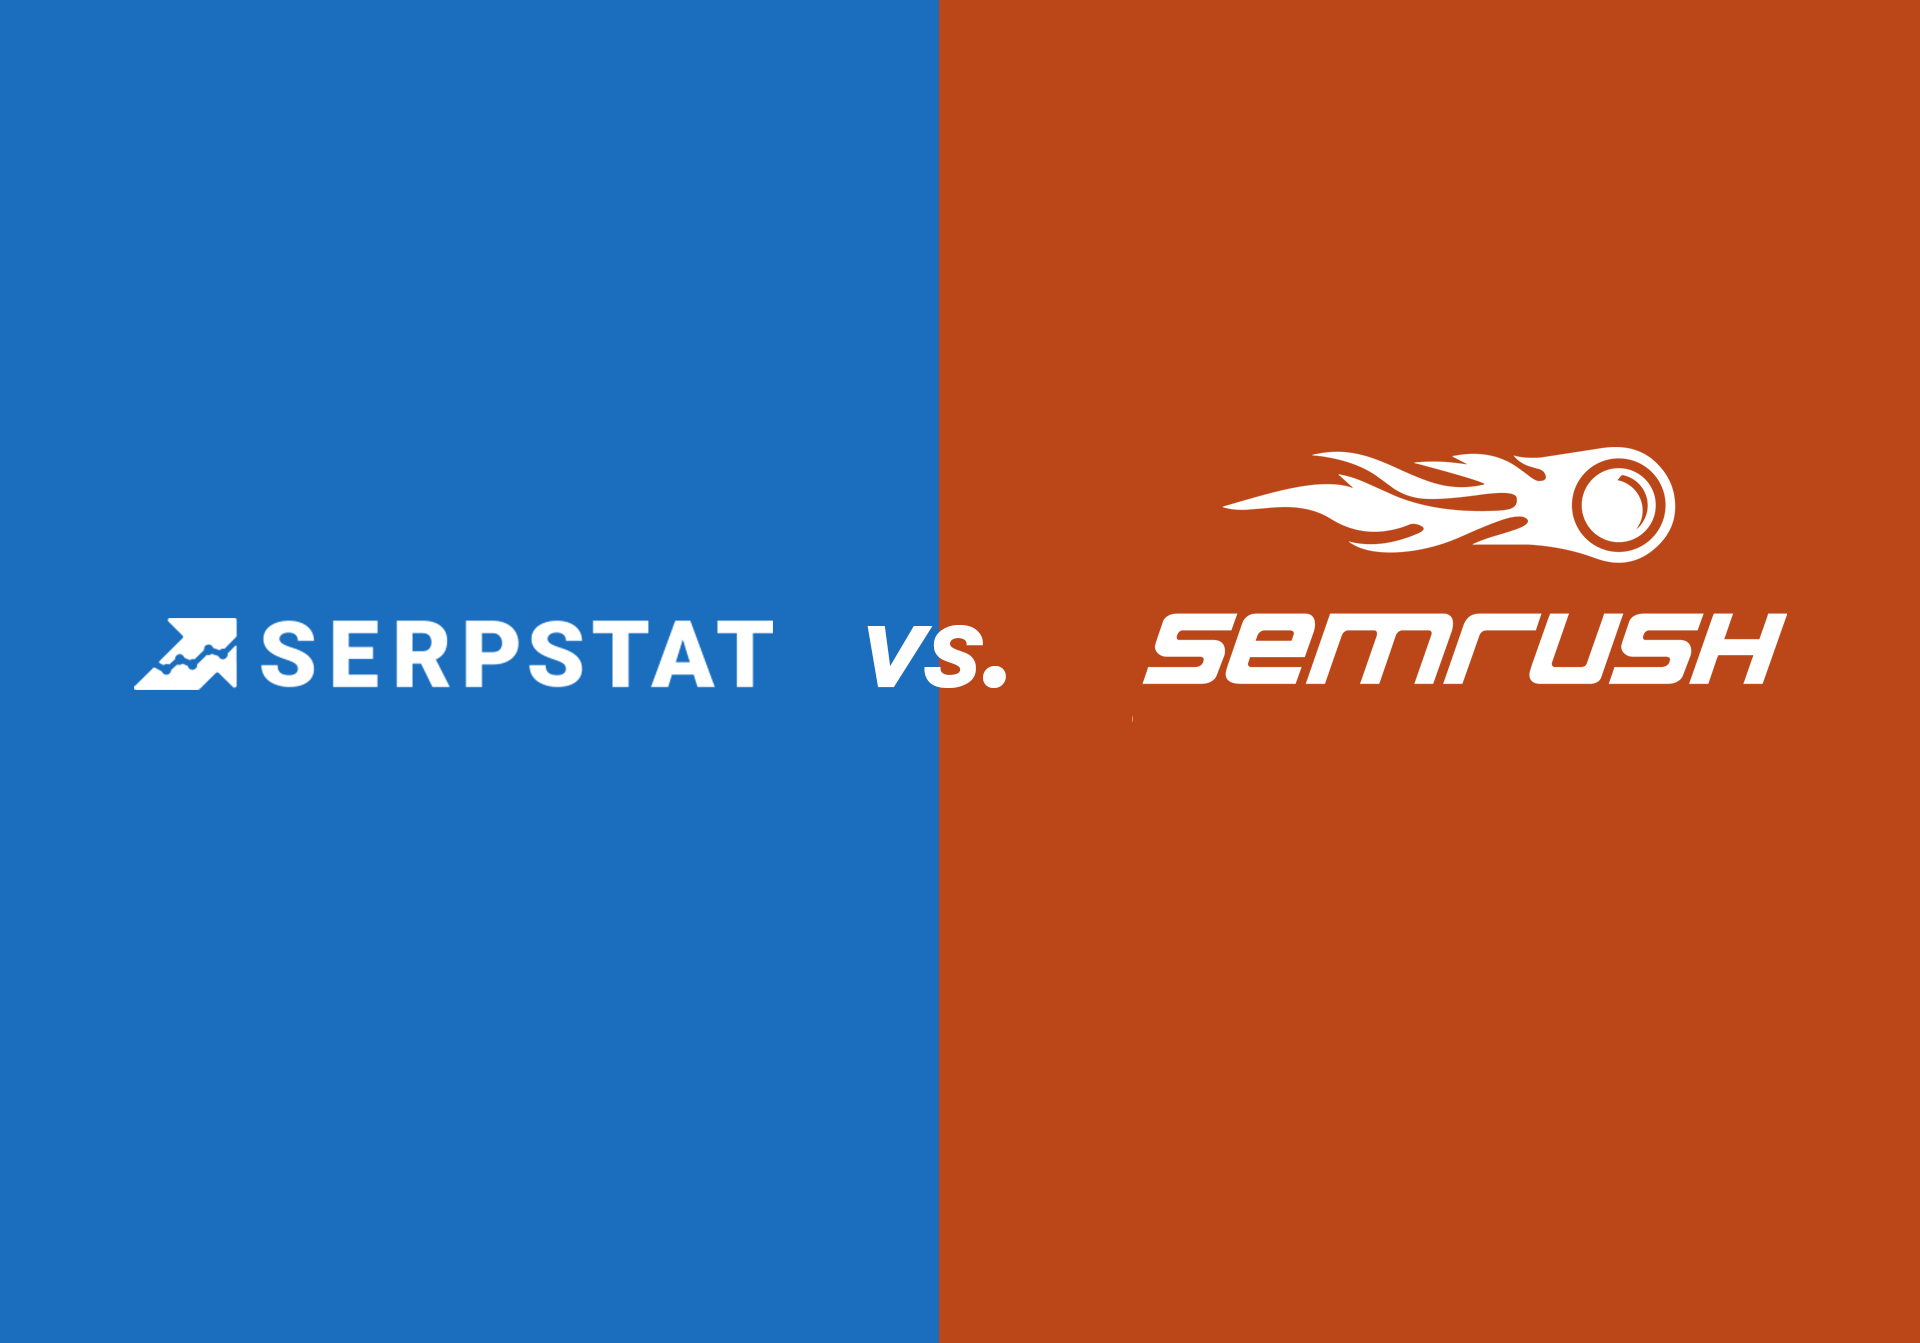 How To Use Semrush Coupon Code For Subscription